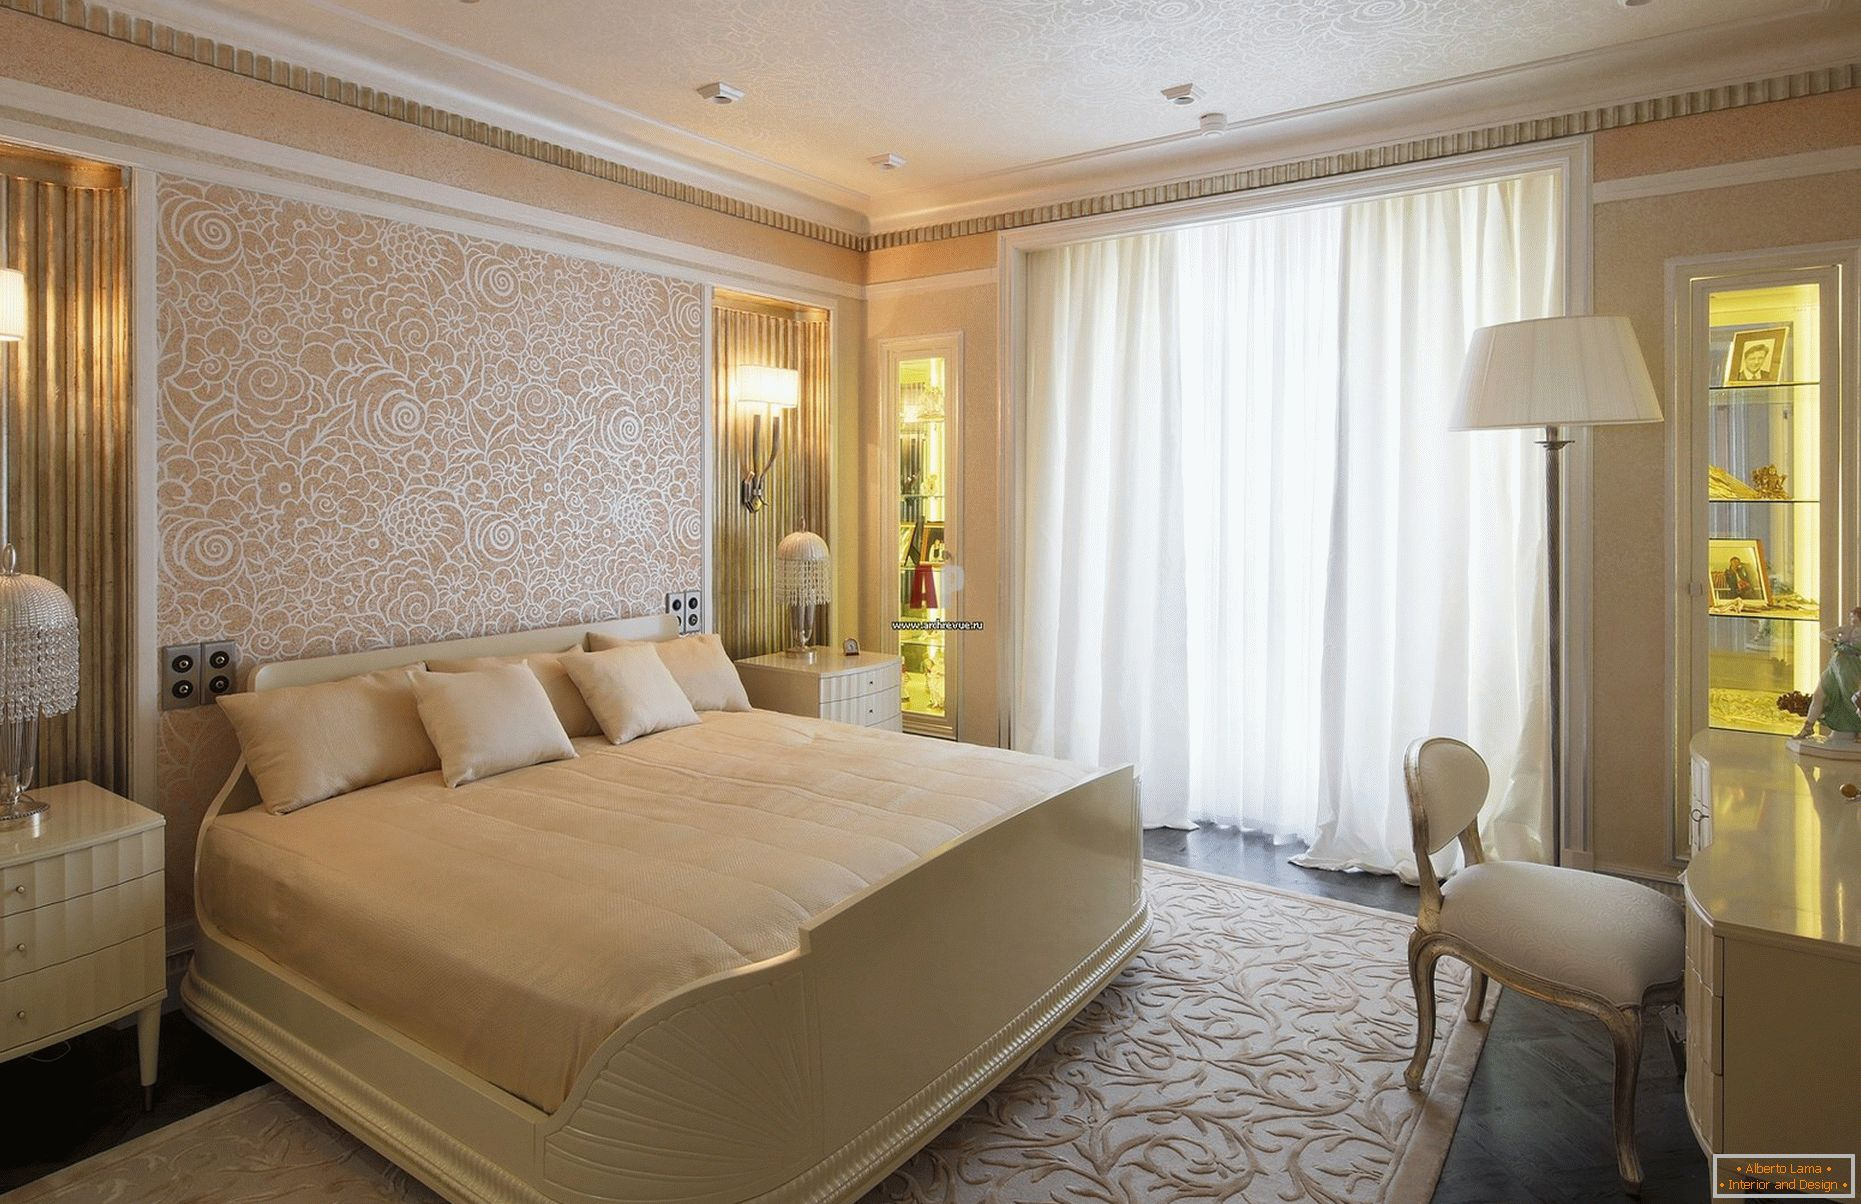 Peach and gold shades in the design of the bedroom